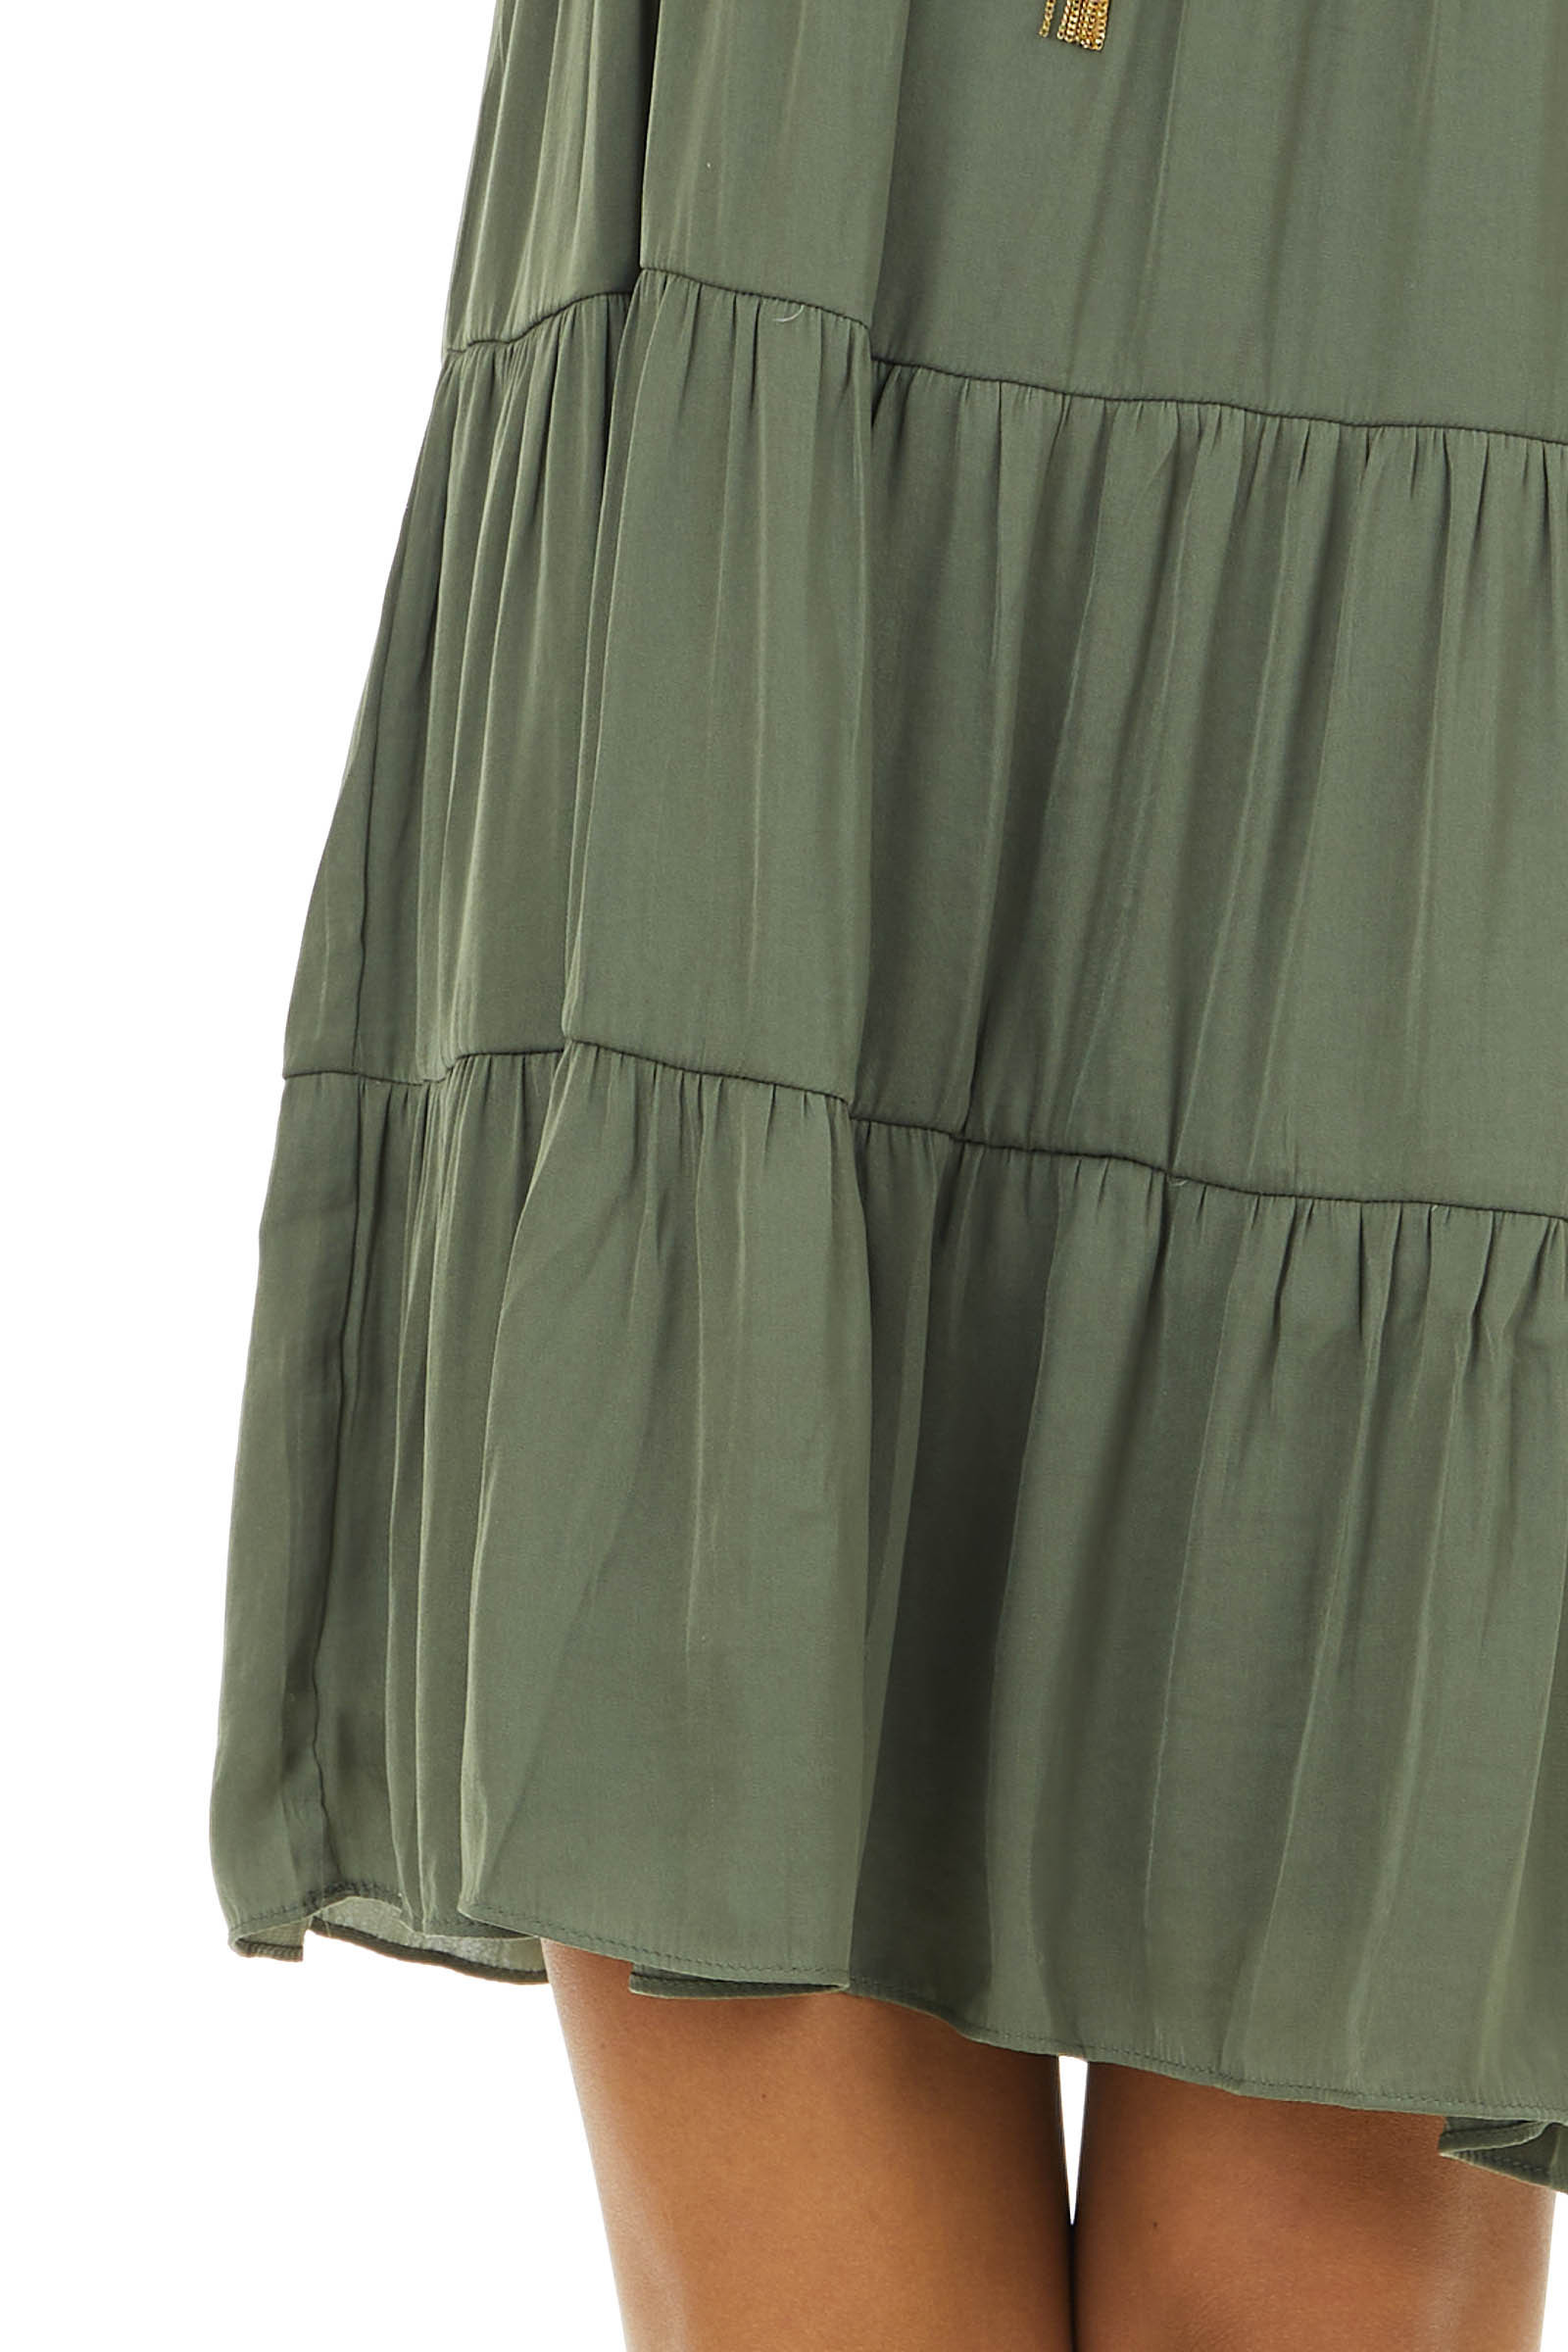 Olive Sleeveless Mini Tiered Dress with Adjustable Straps